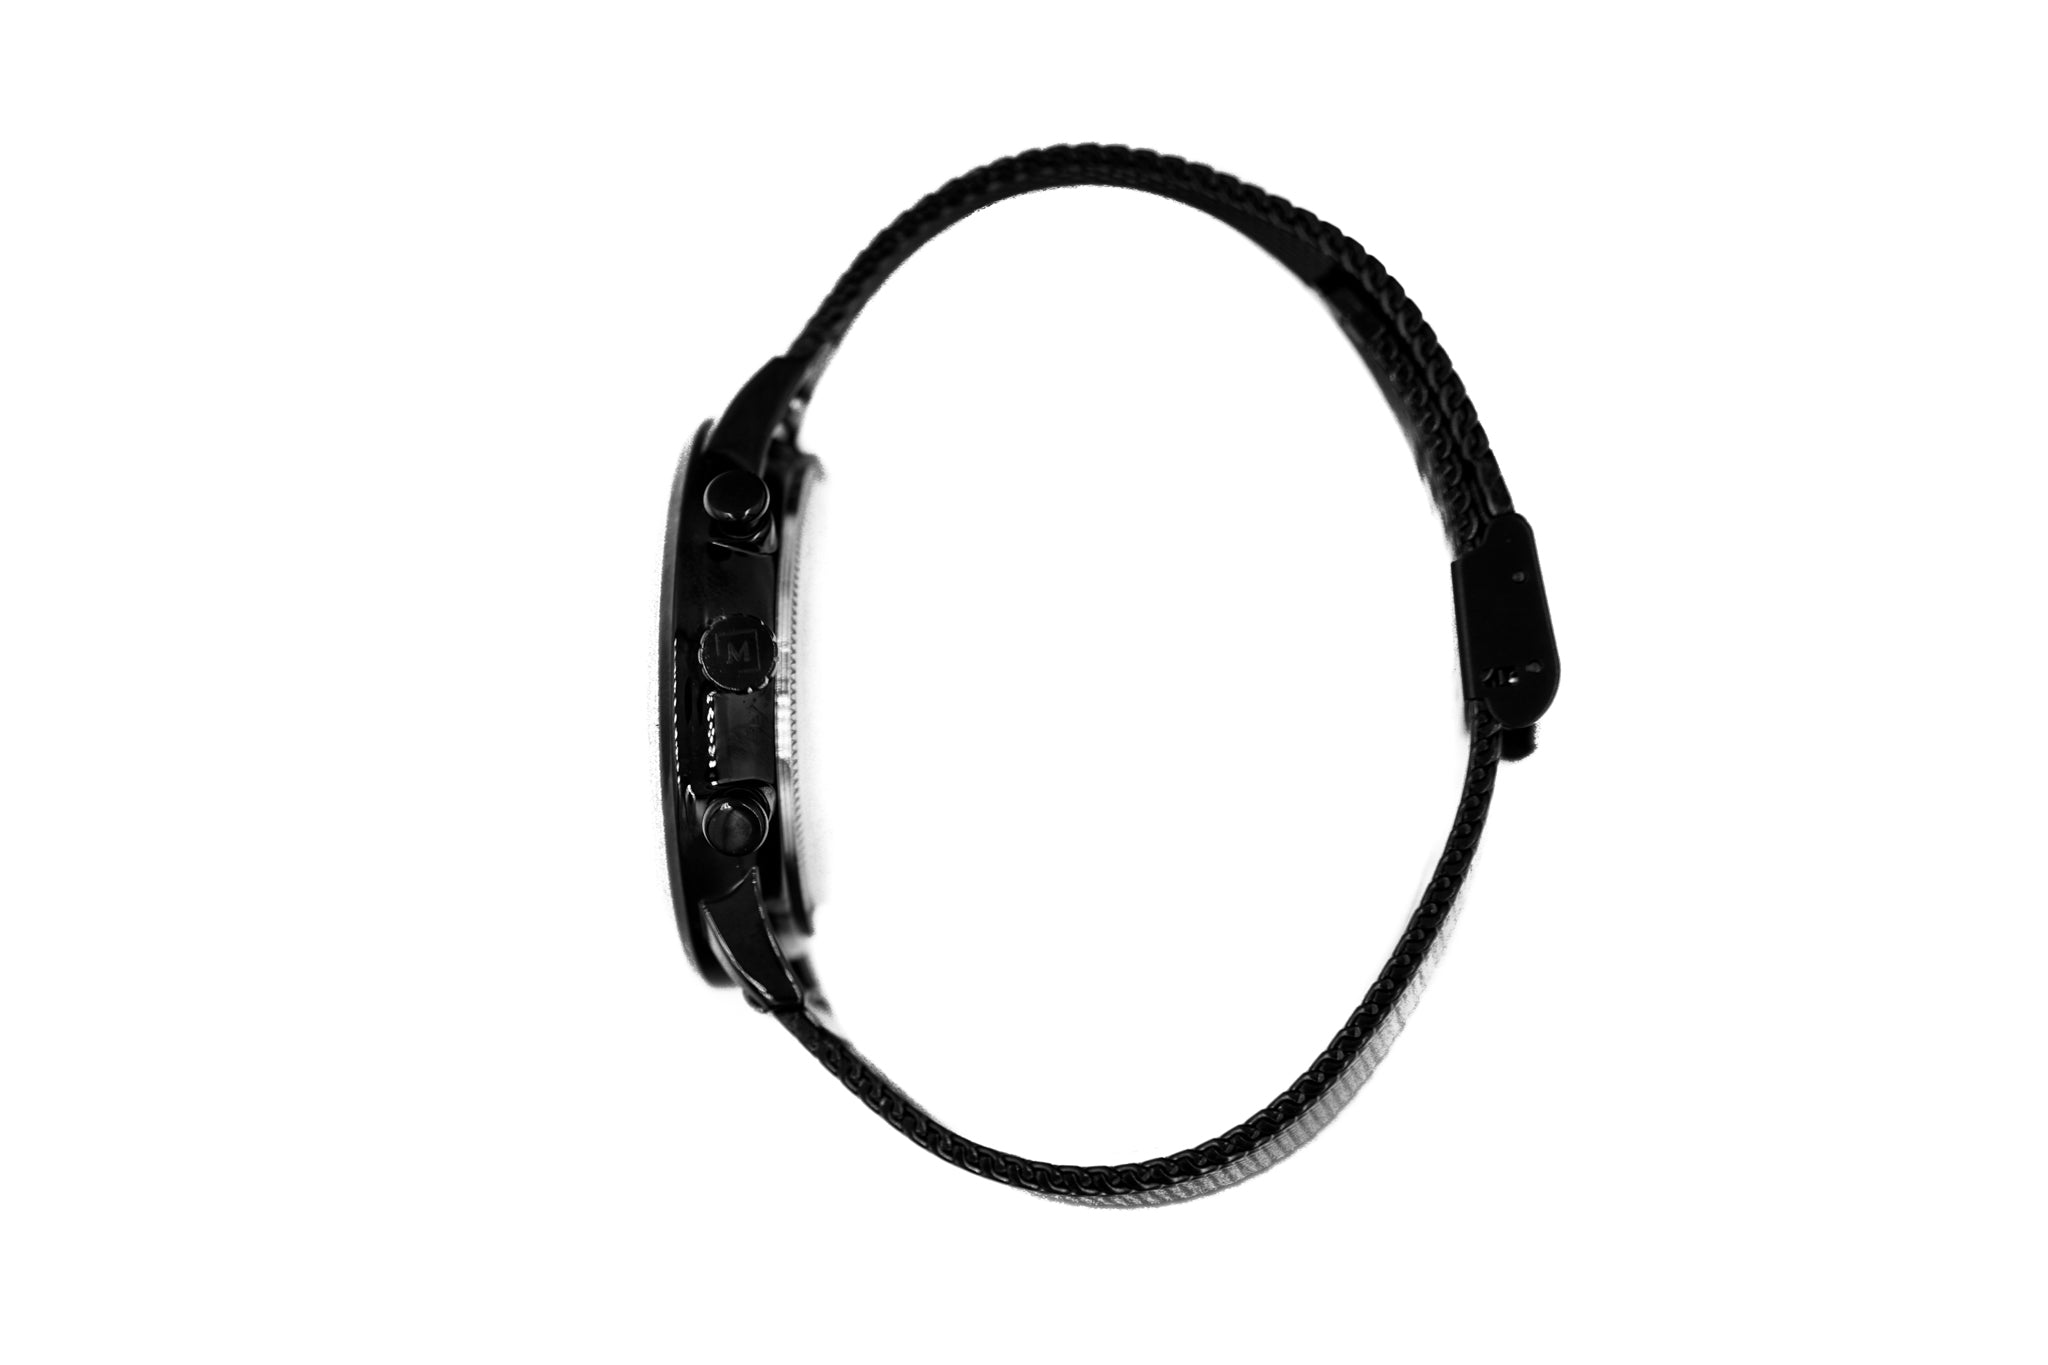 Black watch called Baku from the brand Montreville, seen from the side. This is an image of the watch with a white background. The timepiece has a unique design with a mesh strap in black.